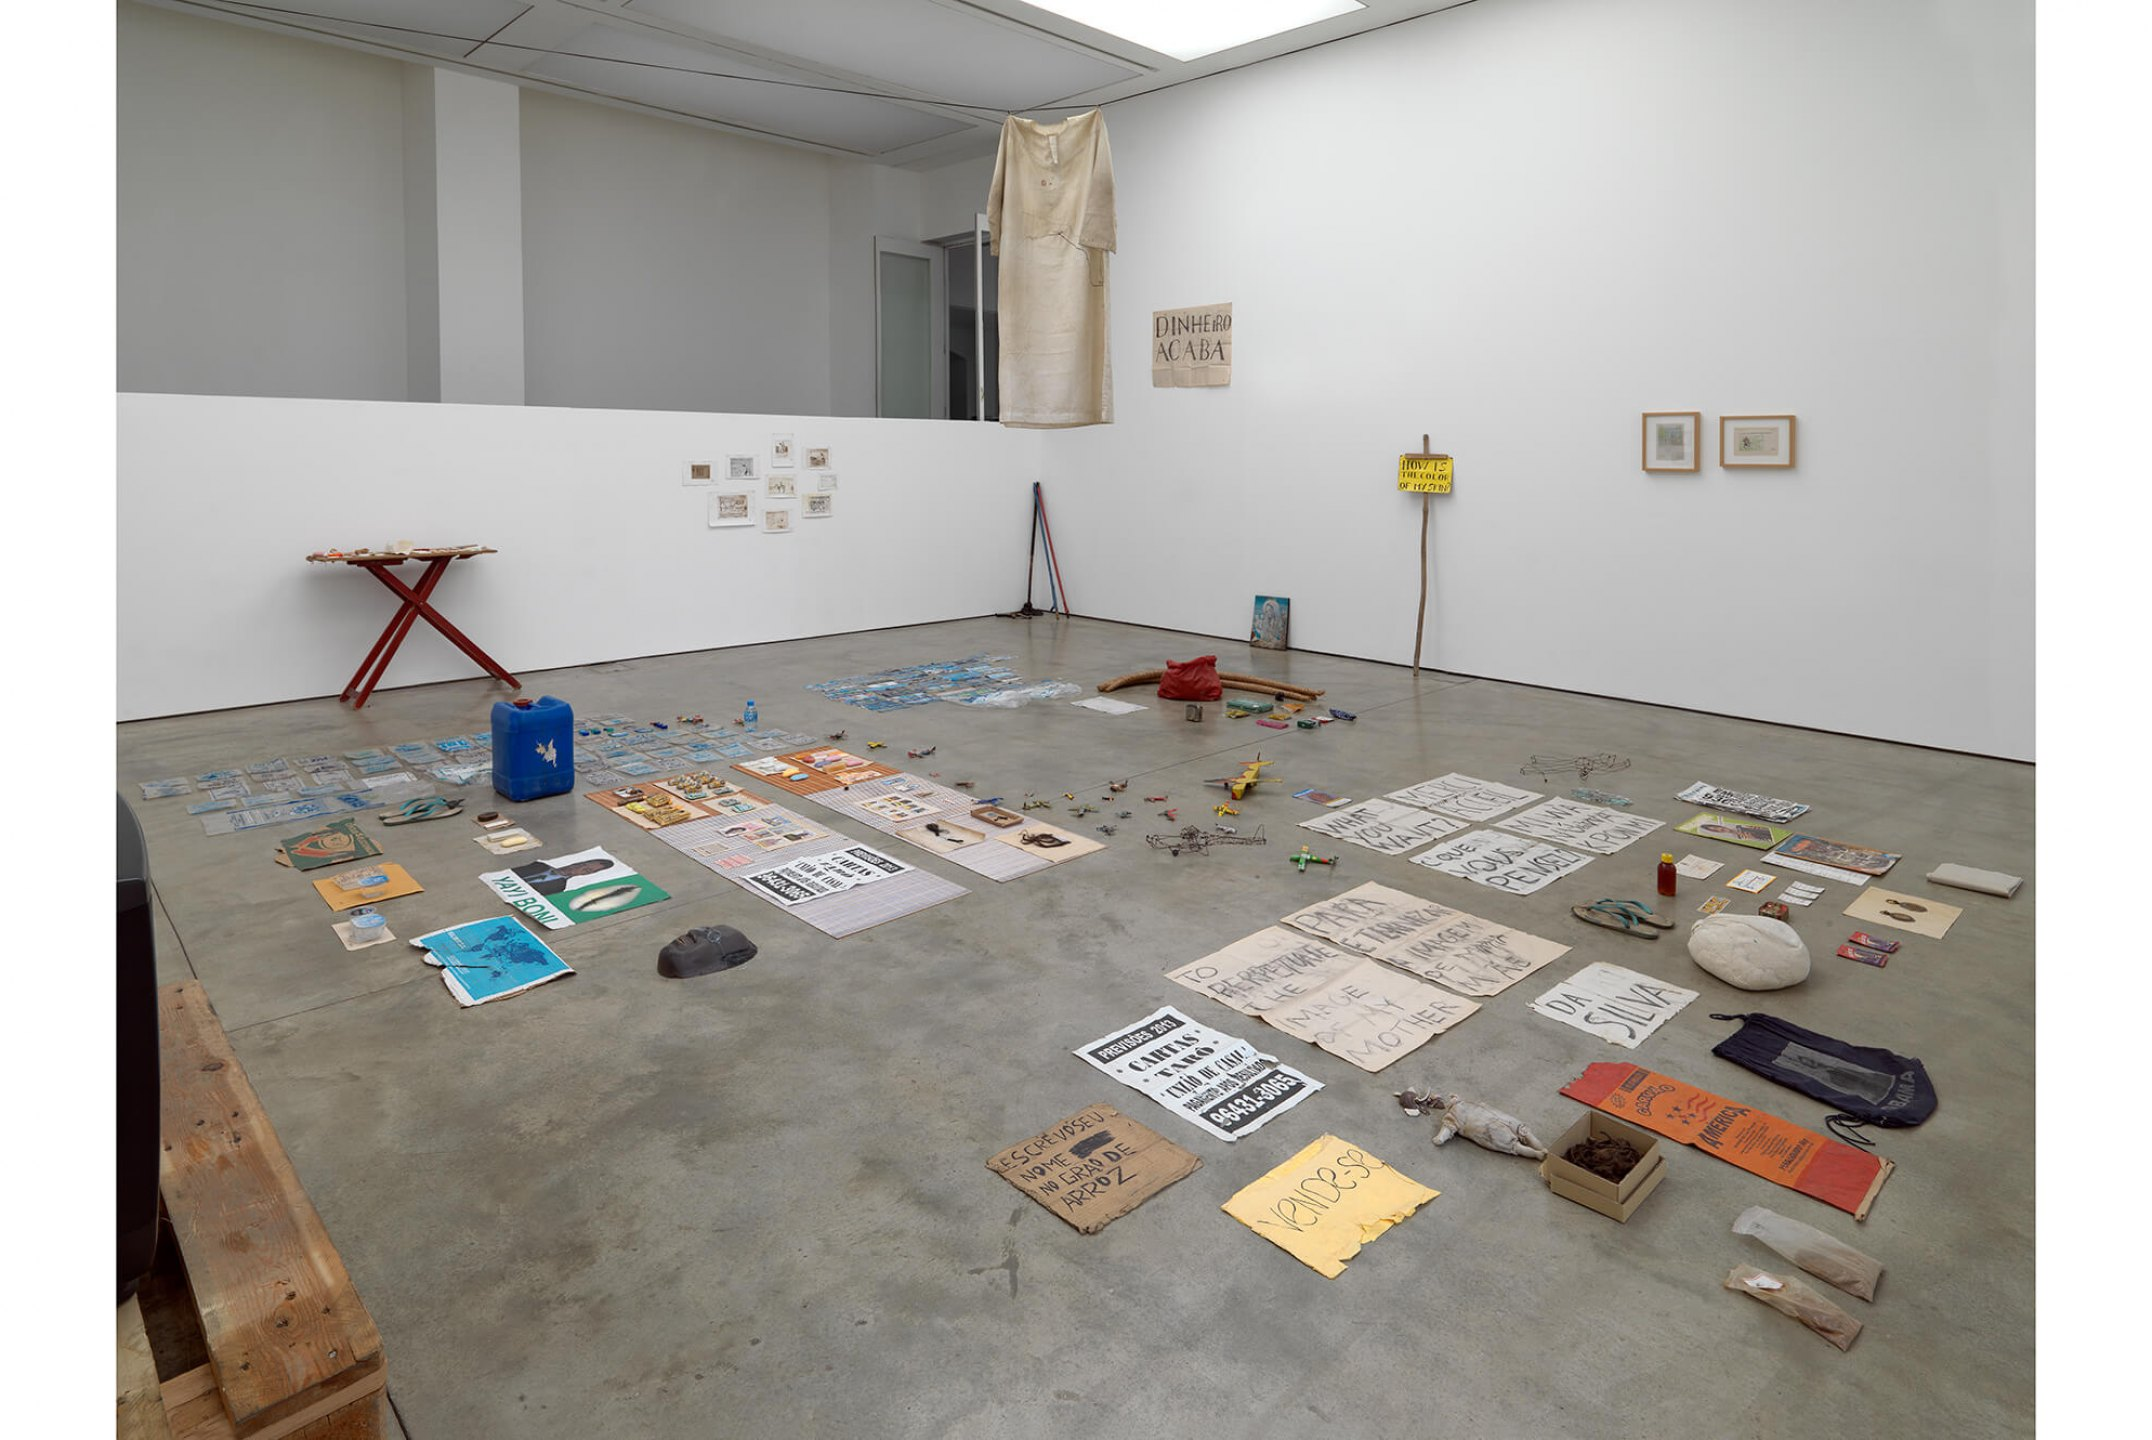 Paulo Nazareth,&nbsp;<em>The Journal,</em>&nbsp;Institute for Contemporary Arts, London, 2014 - Mendes Wood DM